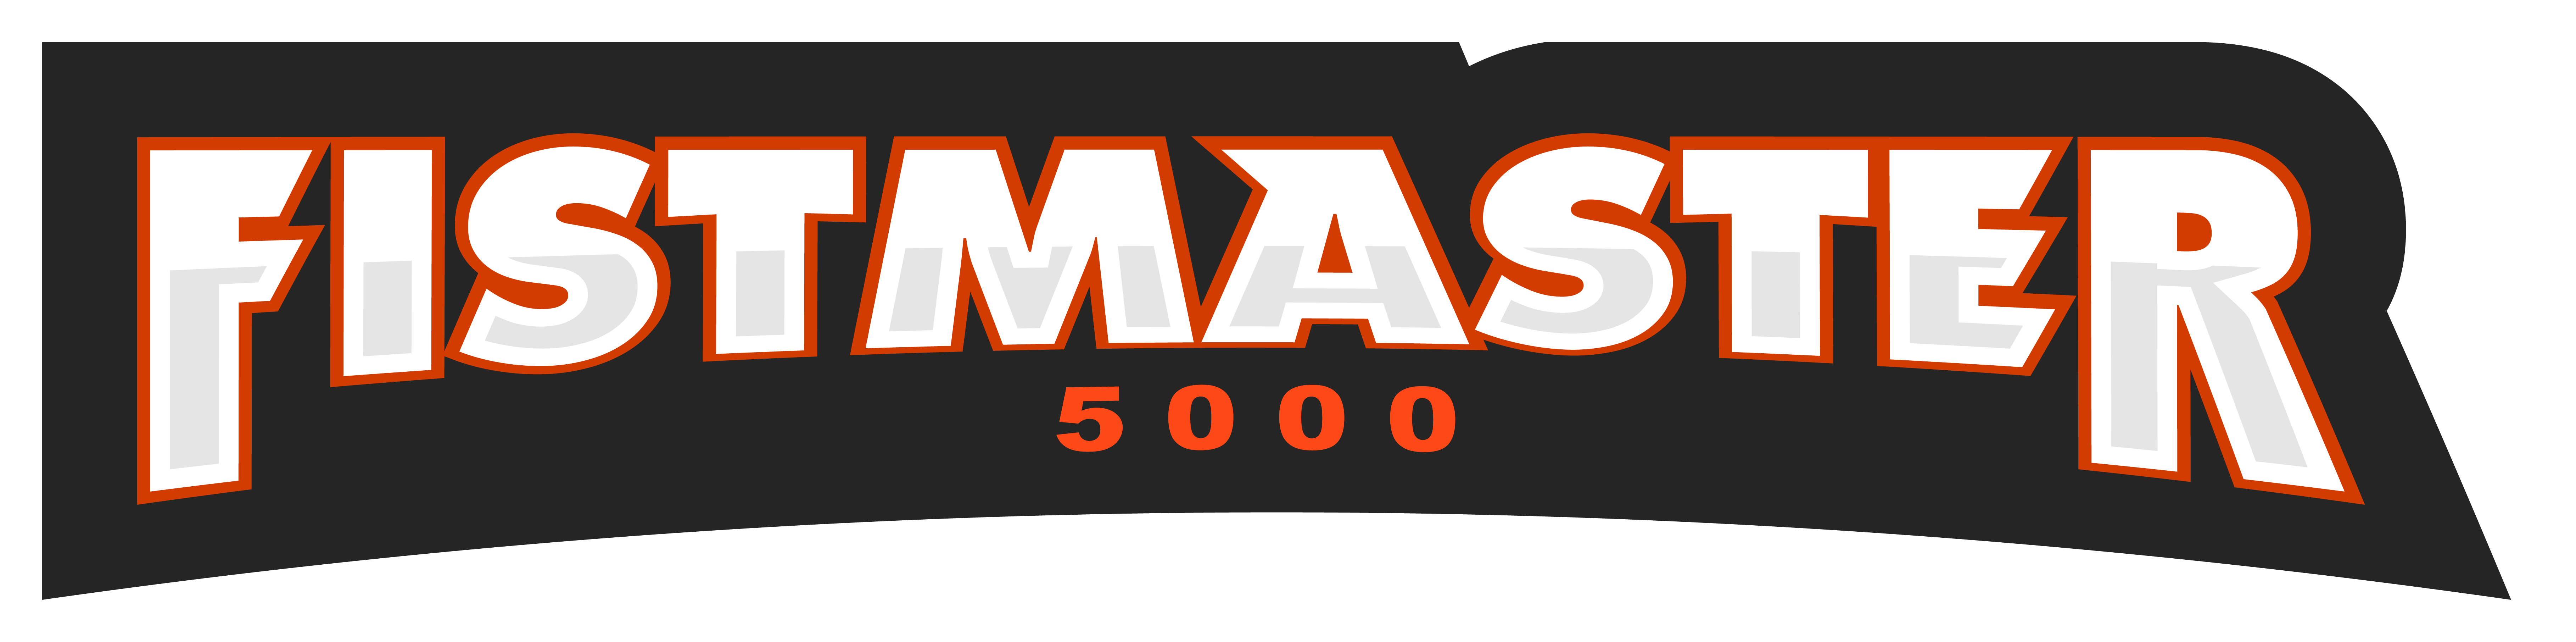 fistmaster5000 text